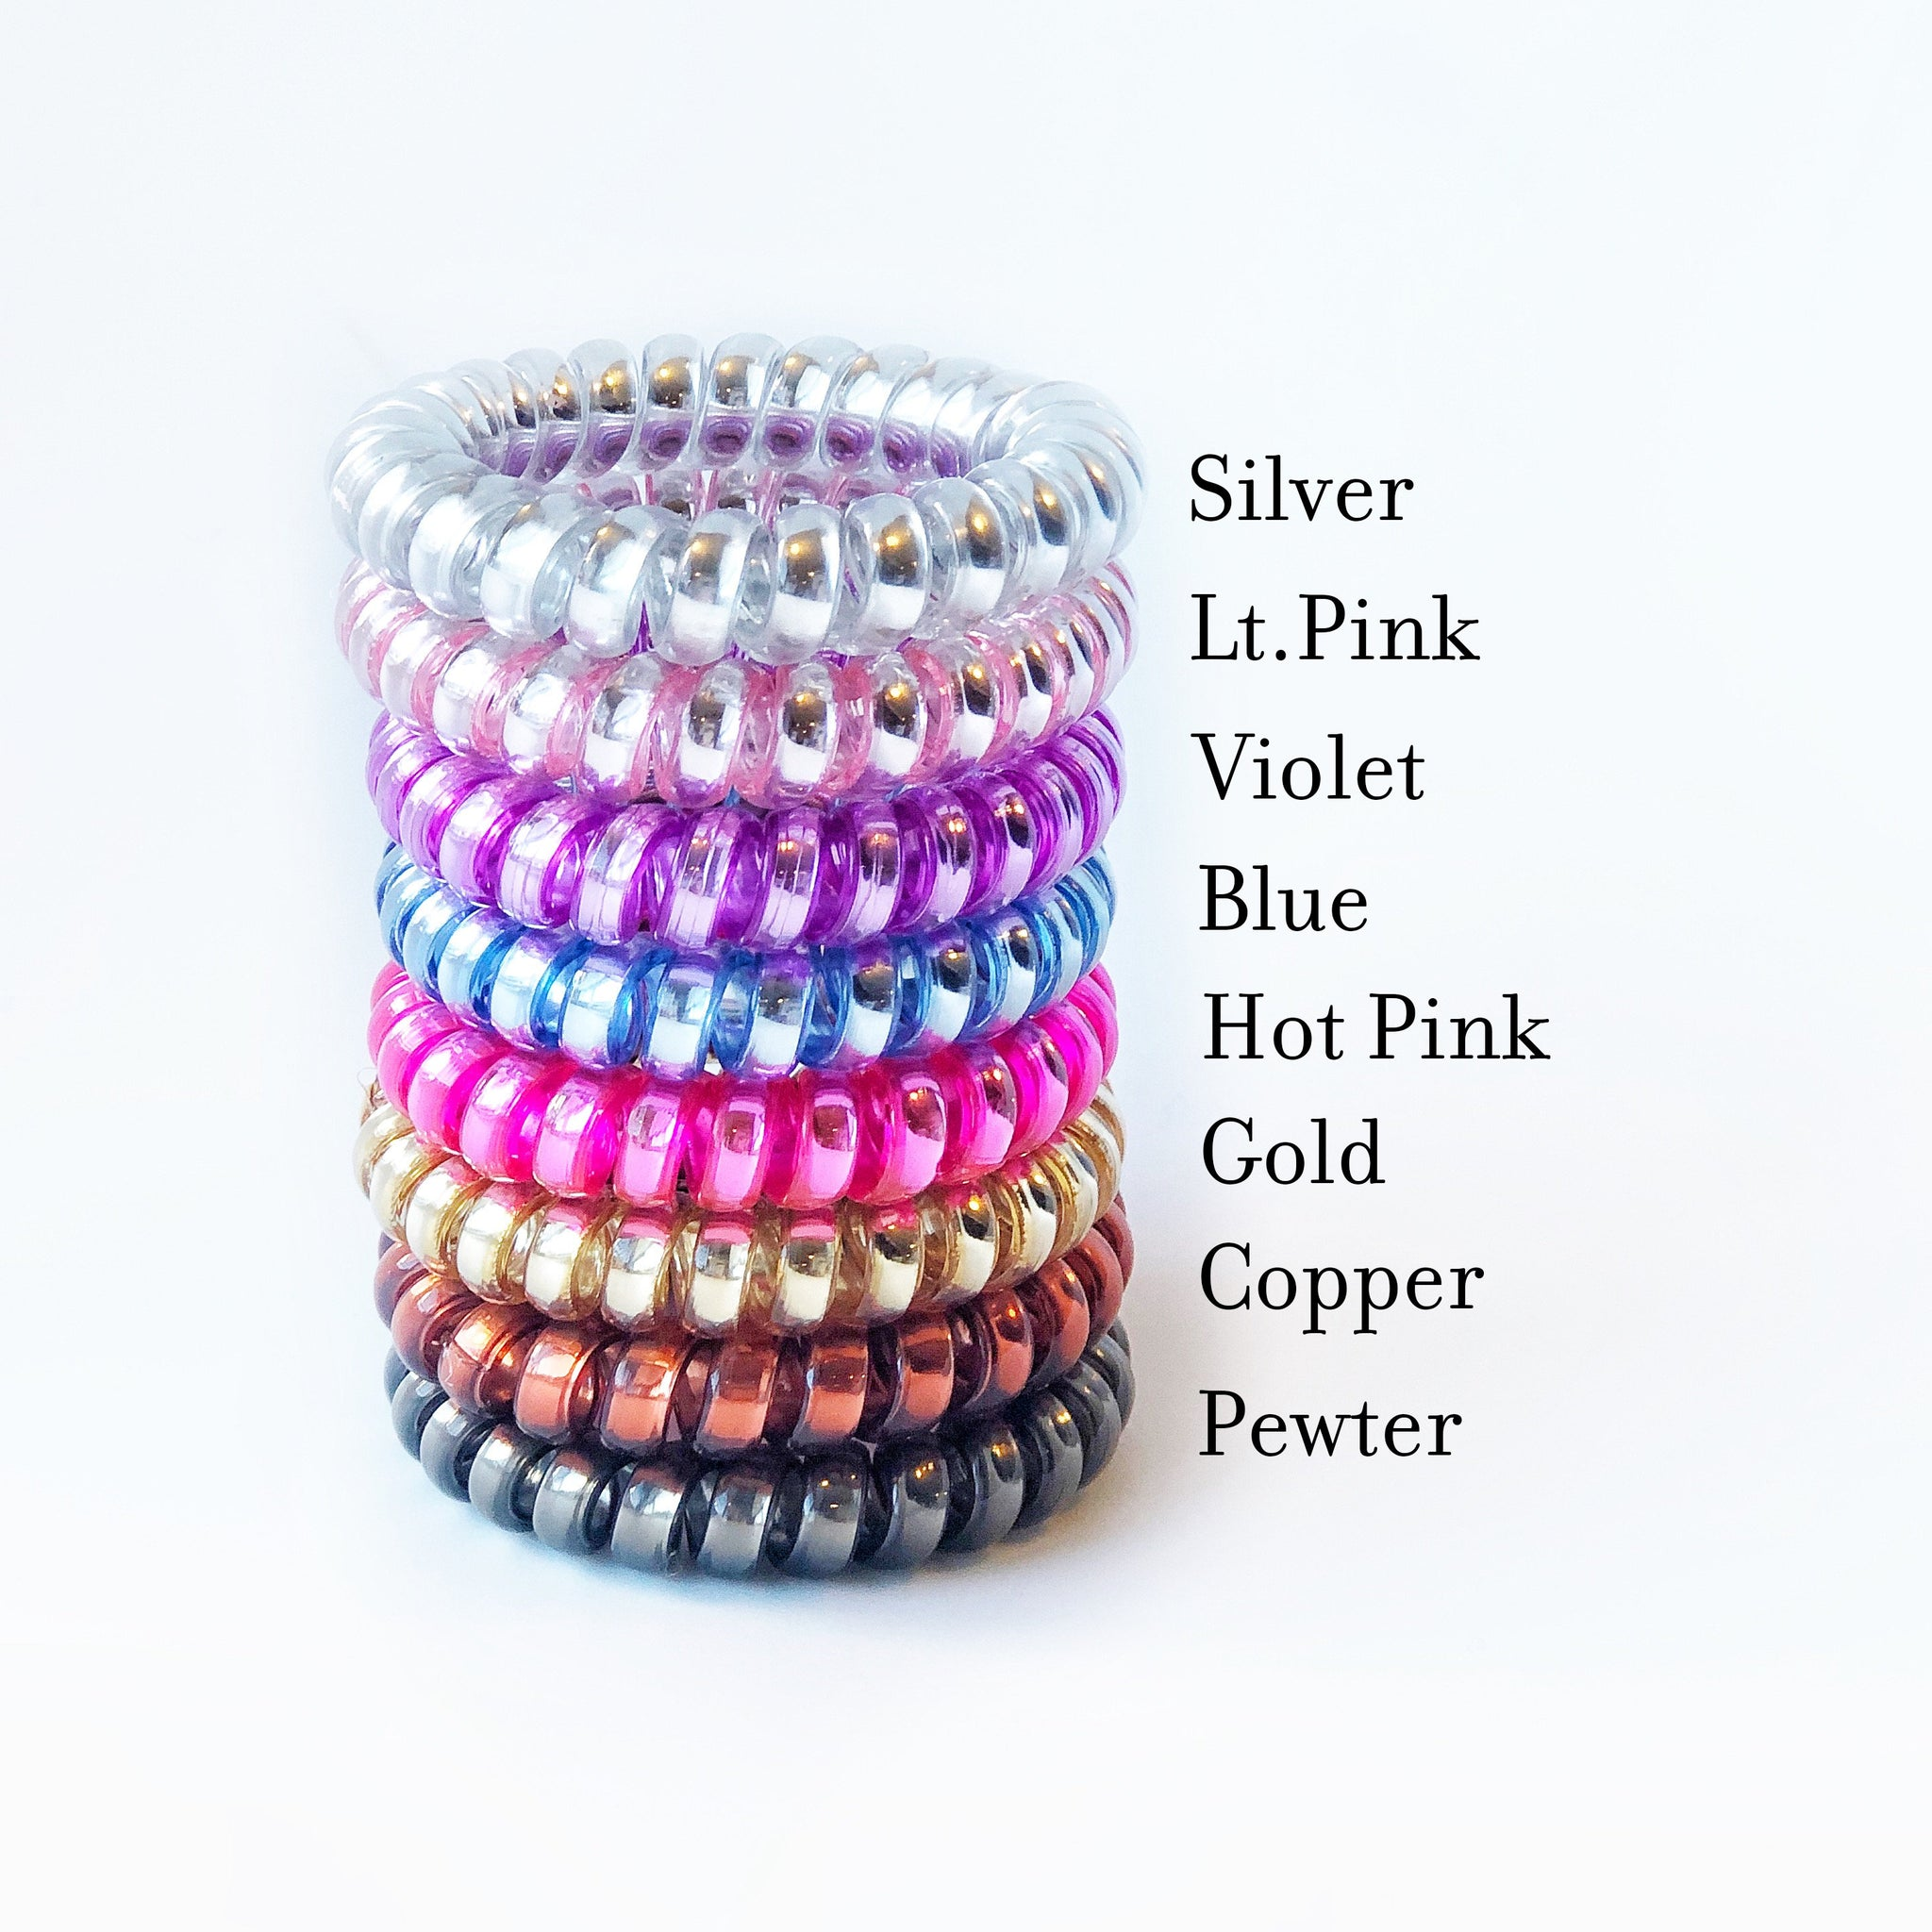 To Have and To Hold Your Hair Back Bachelorette Party Favors, Telephone Cord Spiral Hair Ties, Coil Hair Tie Bridal Shower Favors - @PlumPolkaDot